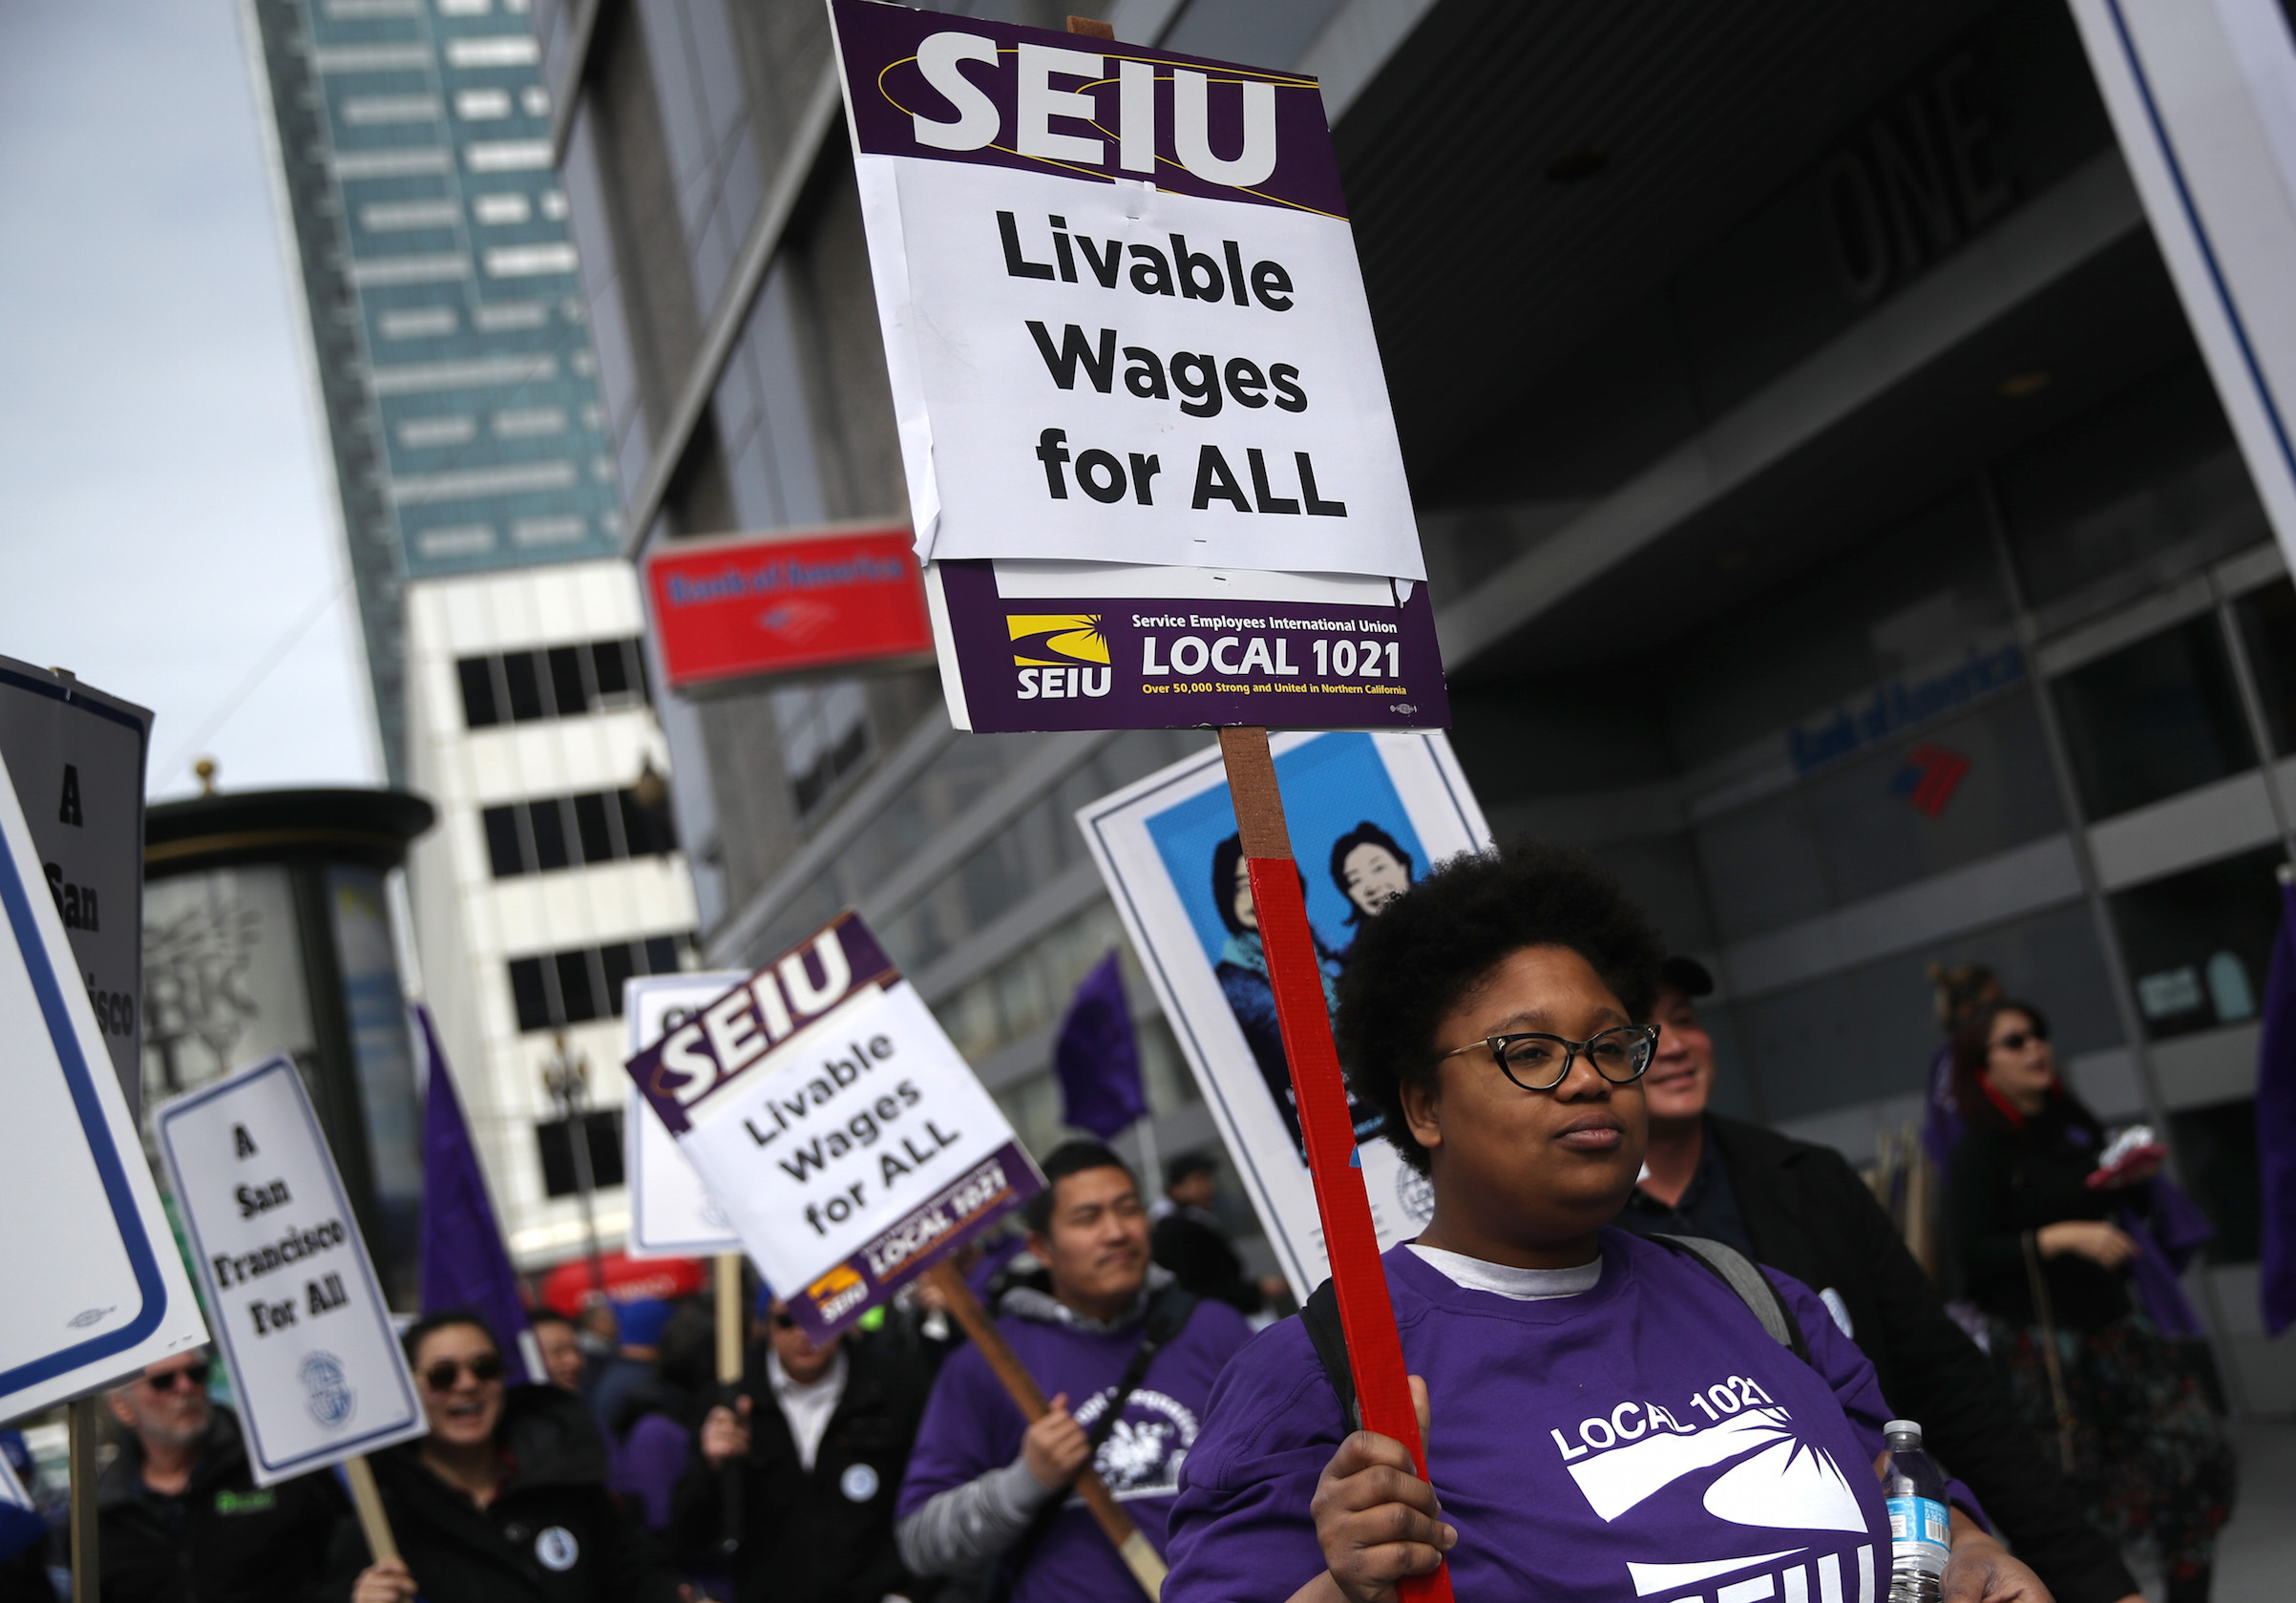 San Francisco city workers carry signs as they march during a rally outside the City and County of San Francisco Human Resources office on March 7, 2019, in San Francisco. Hundreds of San Francisco city workers staged a rally to demand a fair contract that addresses pay equity for women. Public-sector employment is a major factor in the race and gender wage gap.